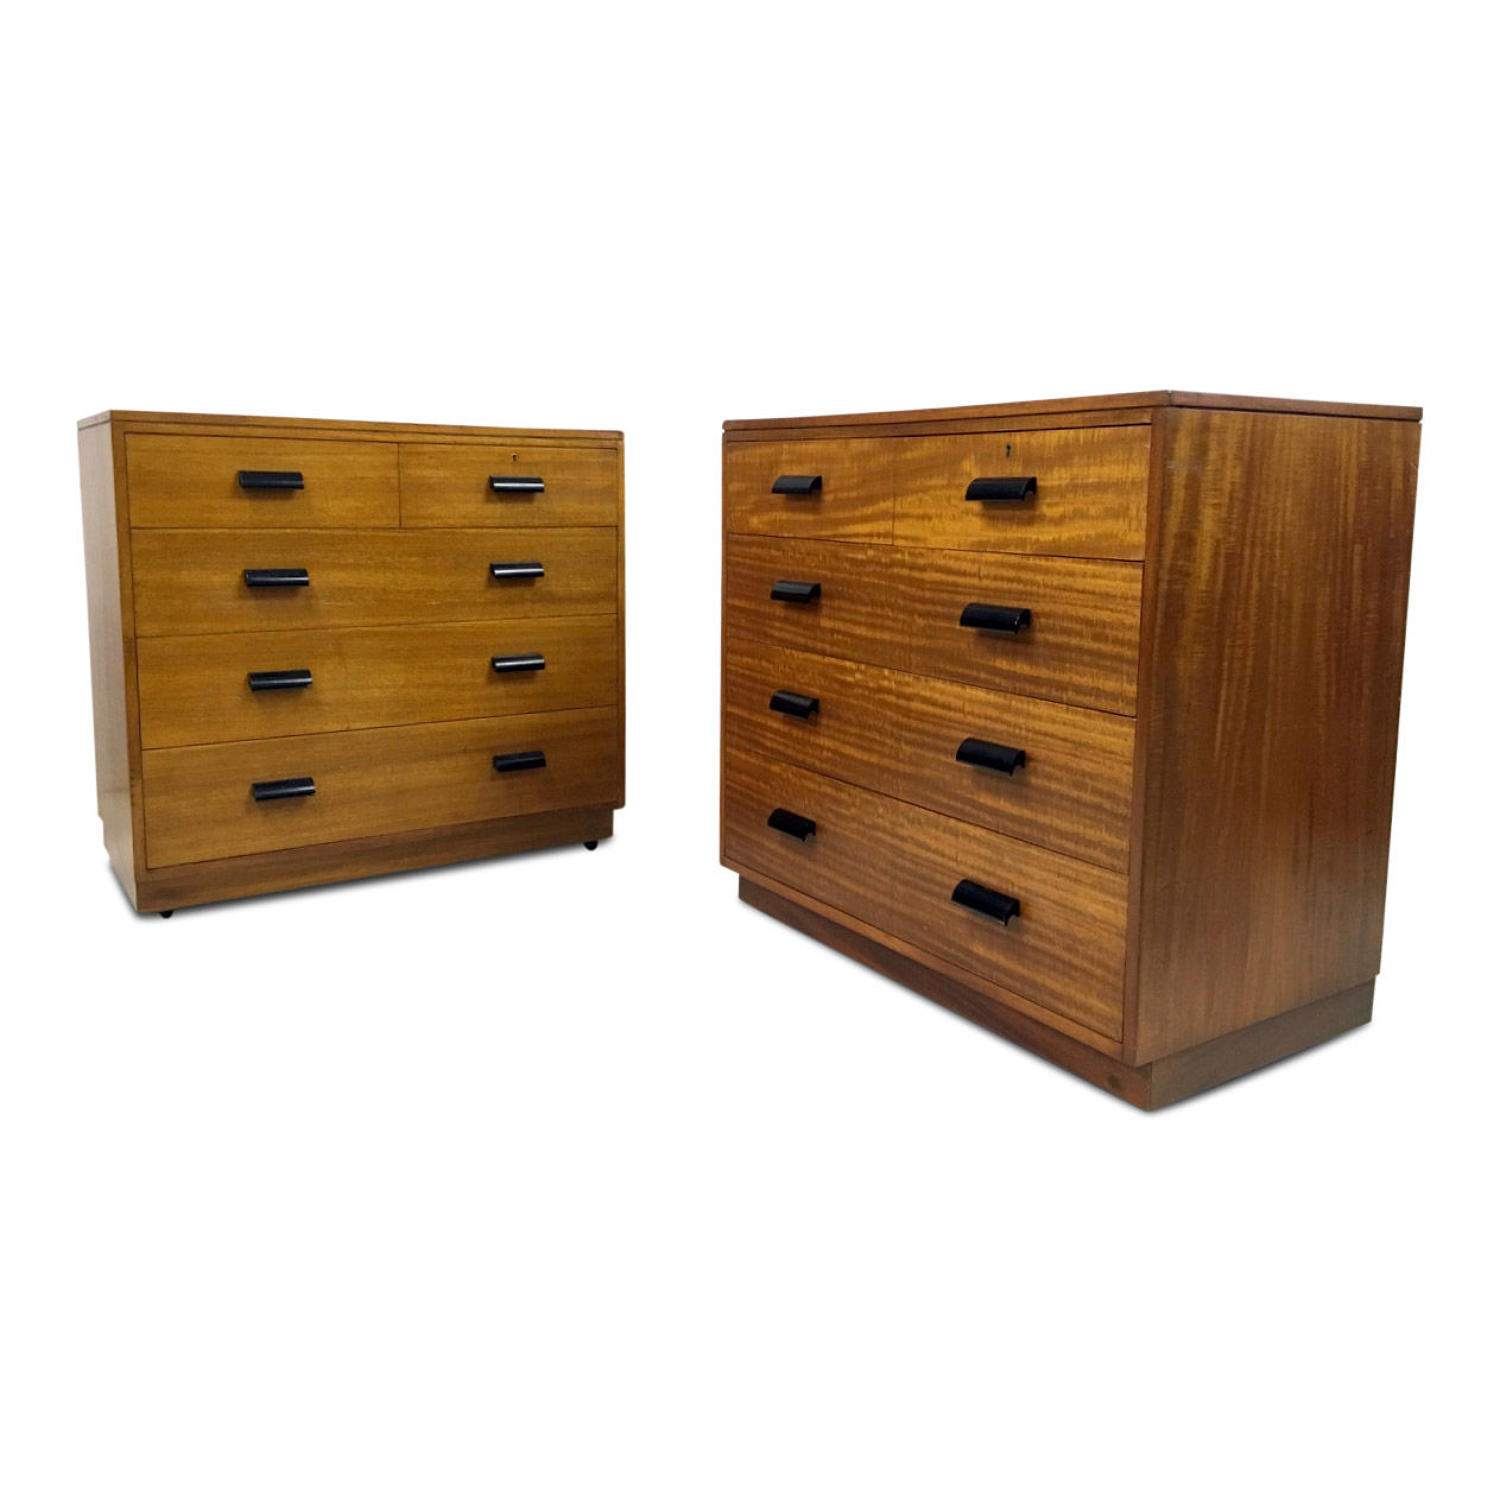 A pair of mid century teak chest of drawers